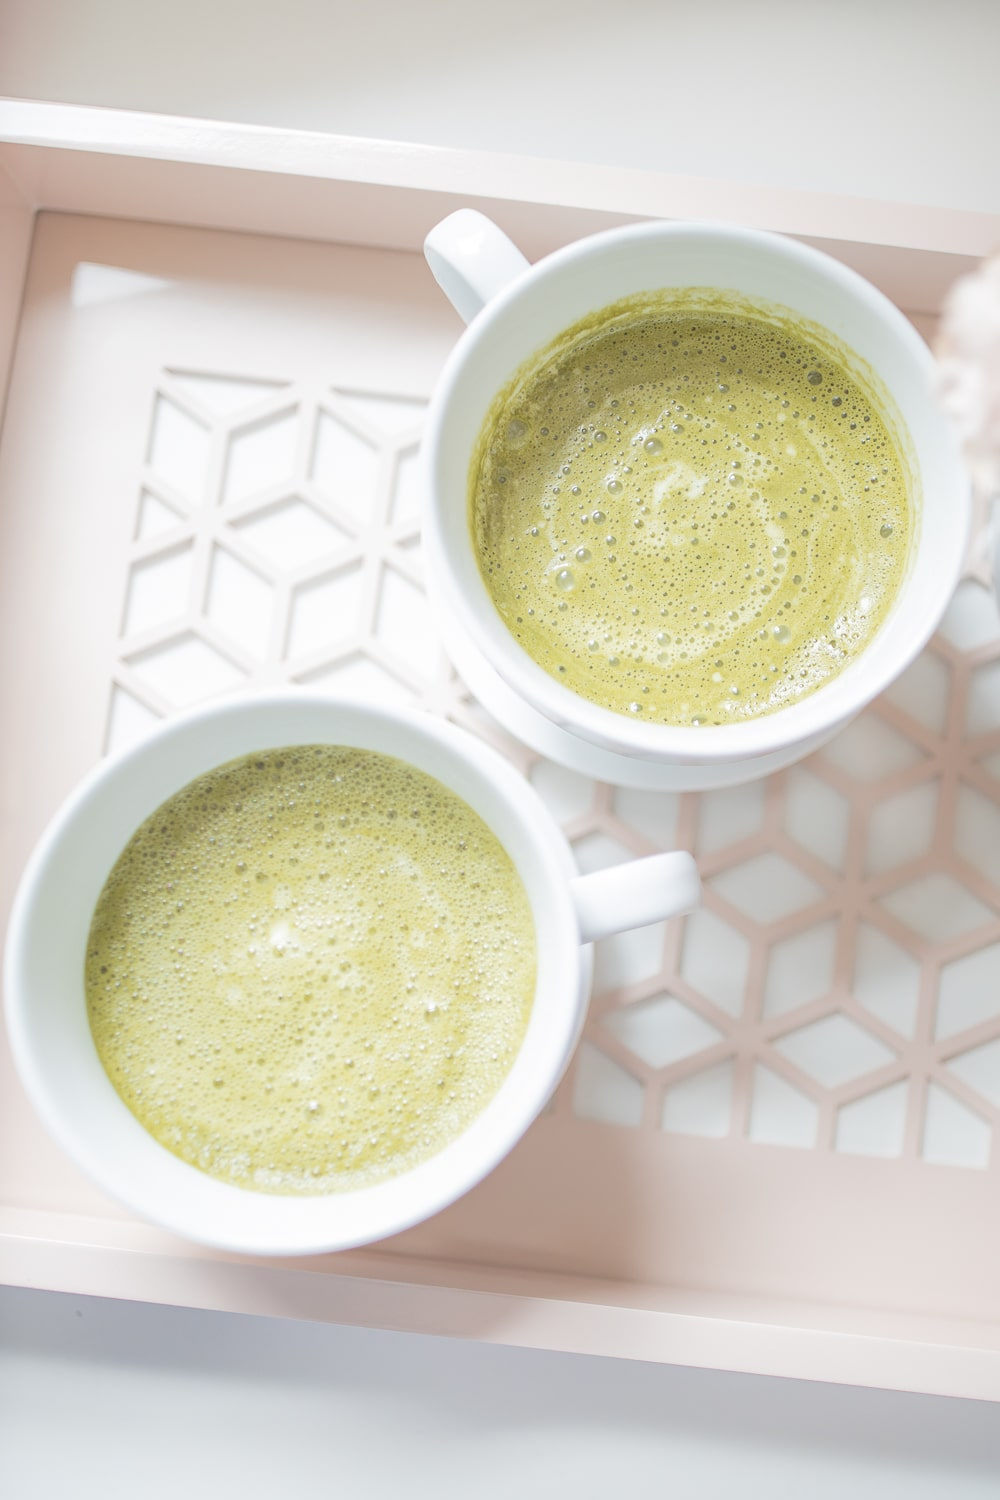 Homemade matcha latte recipe with collagen by blogger Stephanie Ziajka on Diary of a Debutante